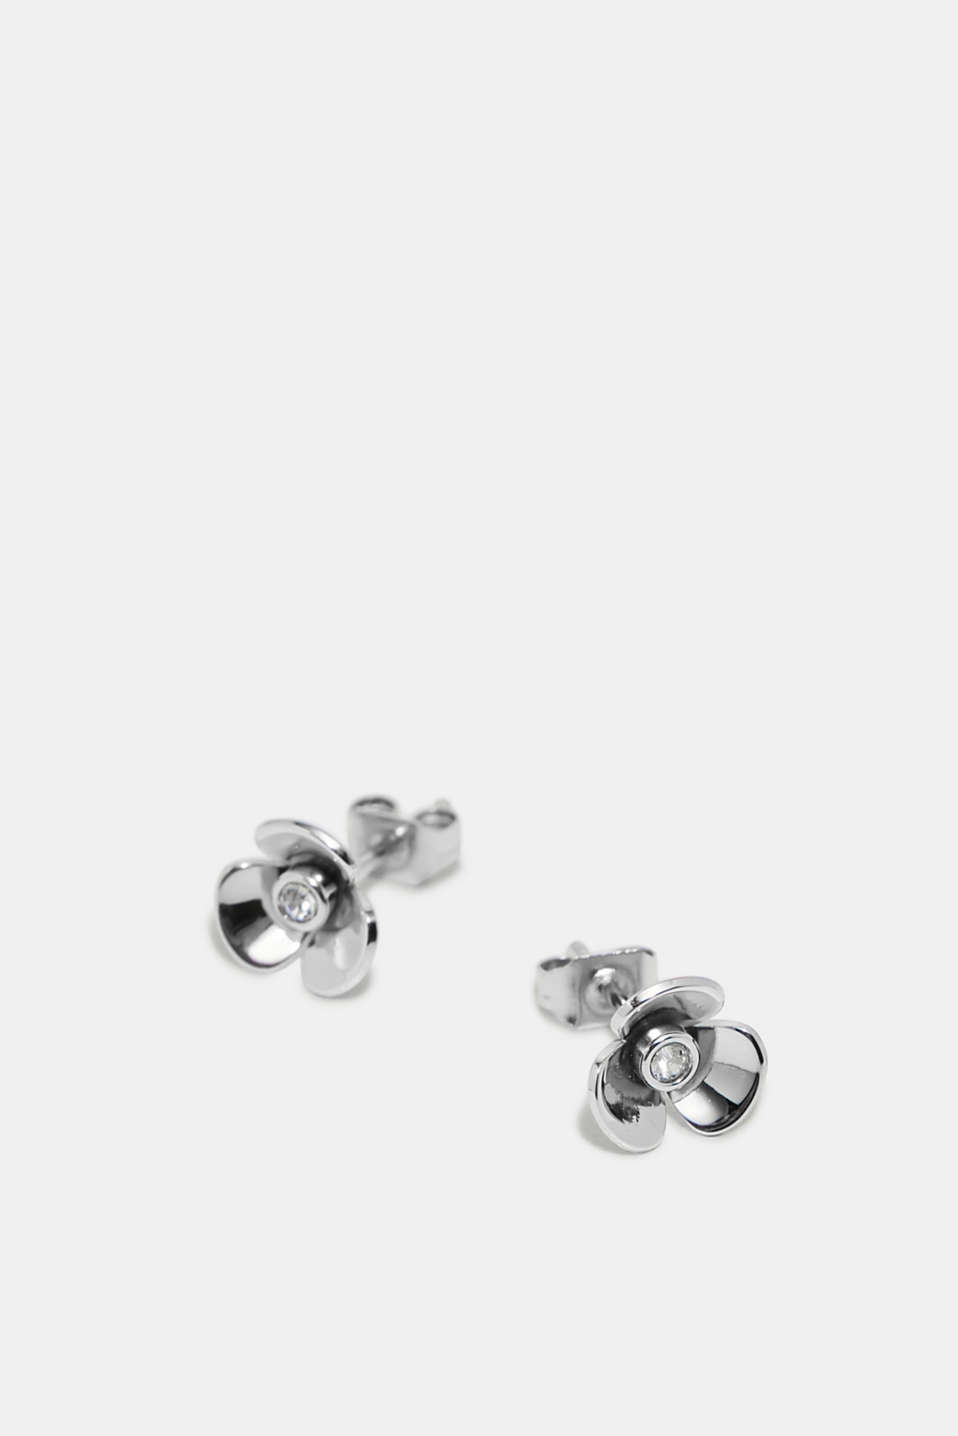 Floral stud earrings with zirconia stones